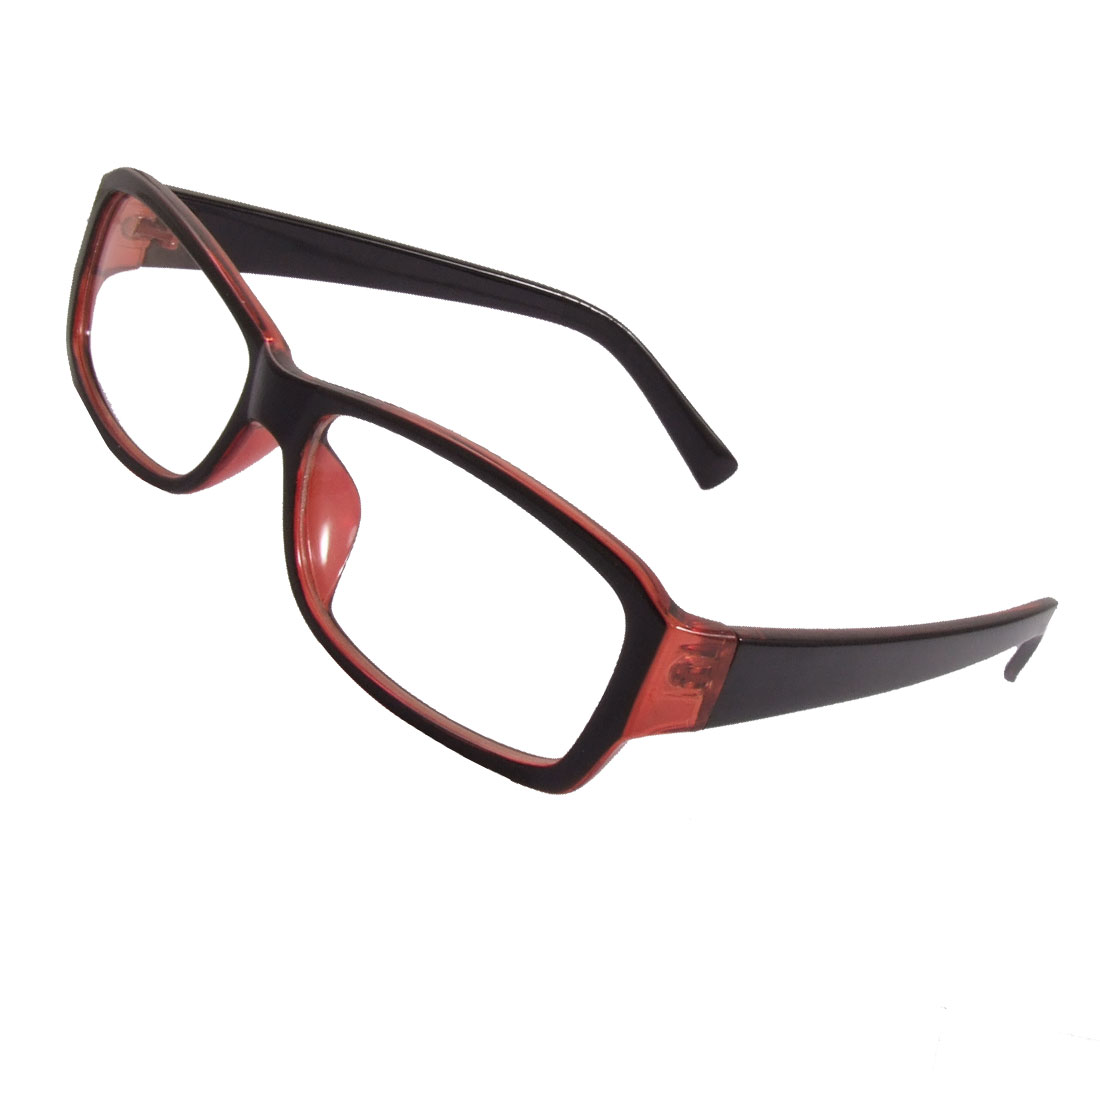 Burgundy Arms Full Frame Multi Coated Lens Plain Glasses Eyeglasses